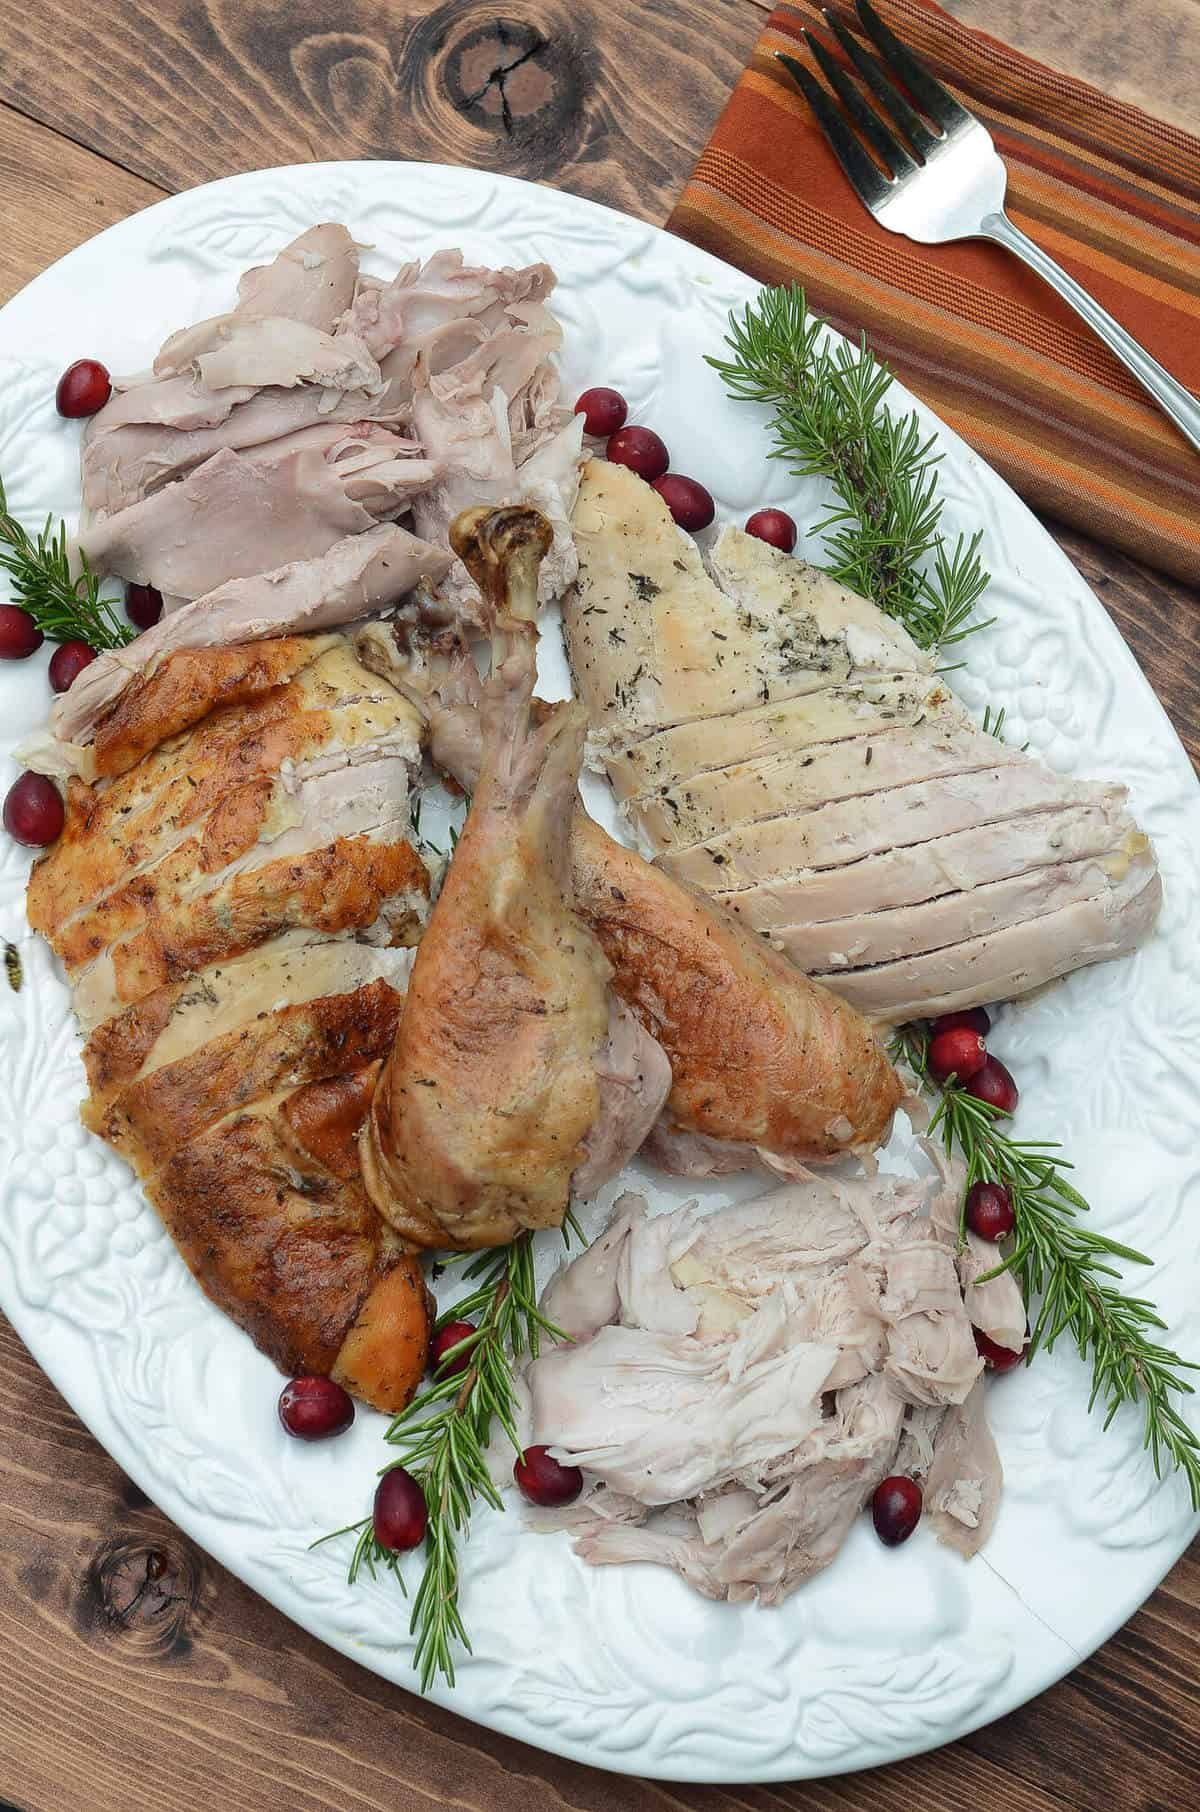 A wonderful, buttery, herb seasoning rub helps to create this tender, juicy Herb Roasted Turkey. The perfect centerpiece for your holiday table!